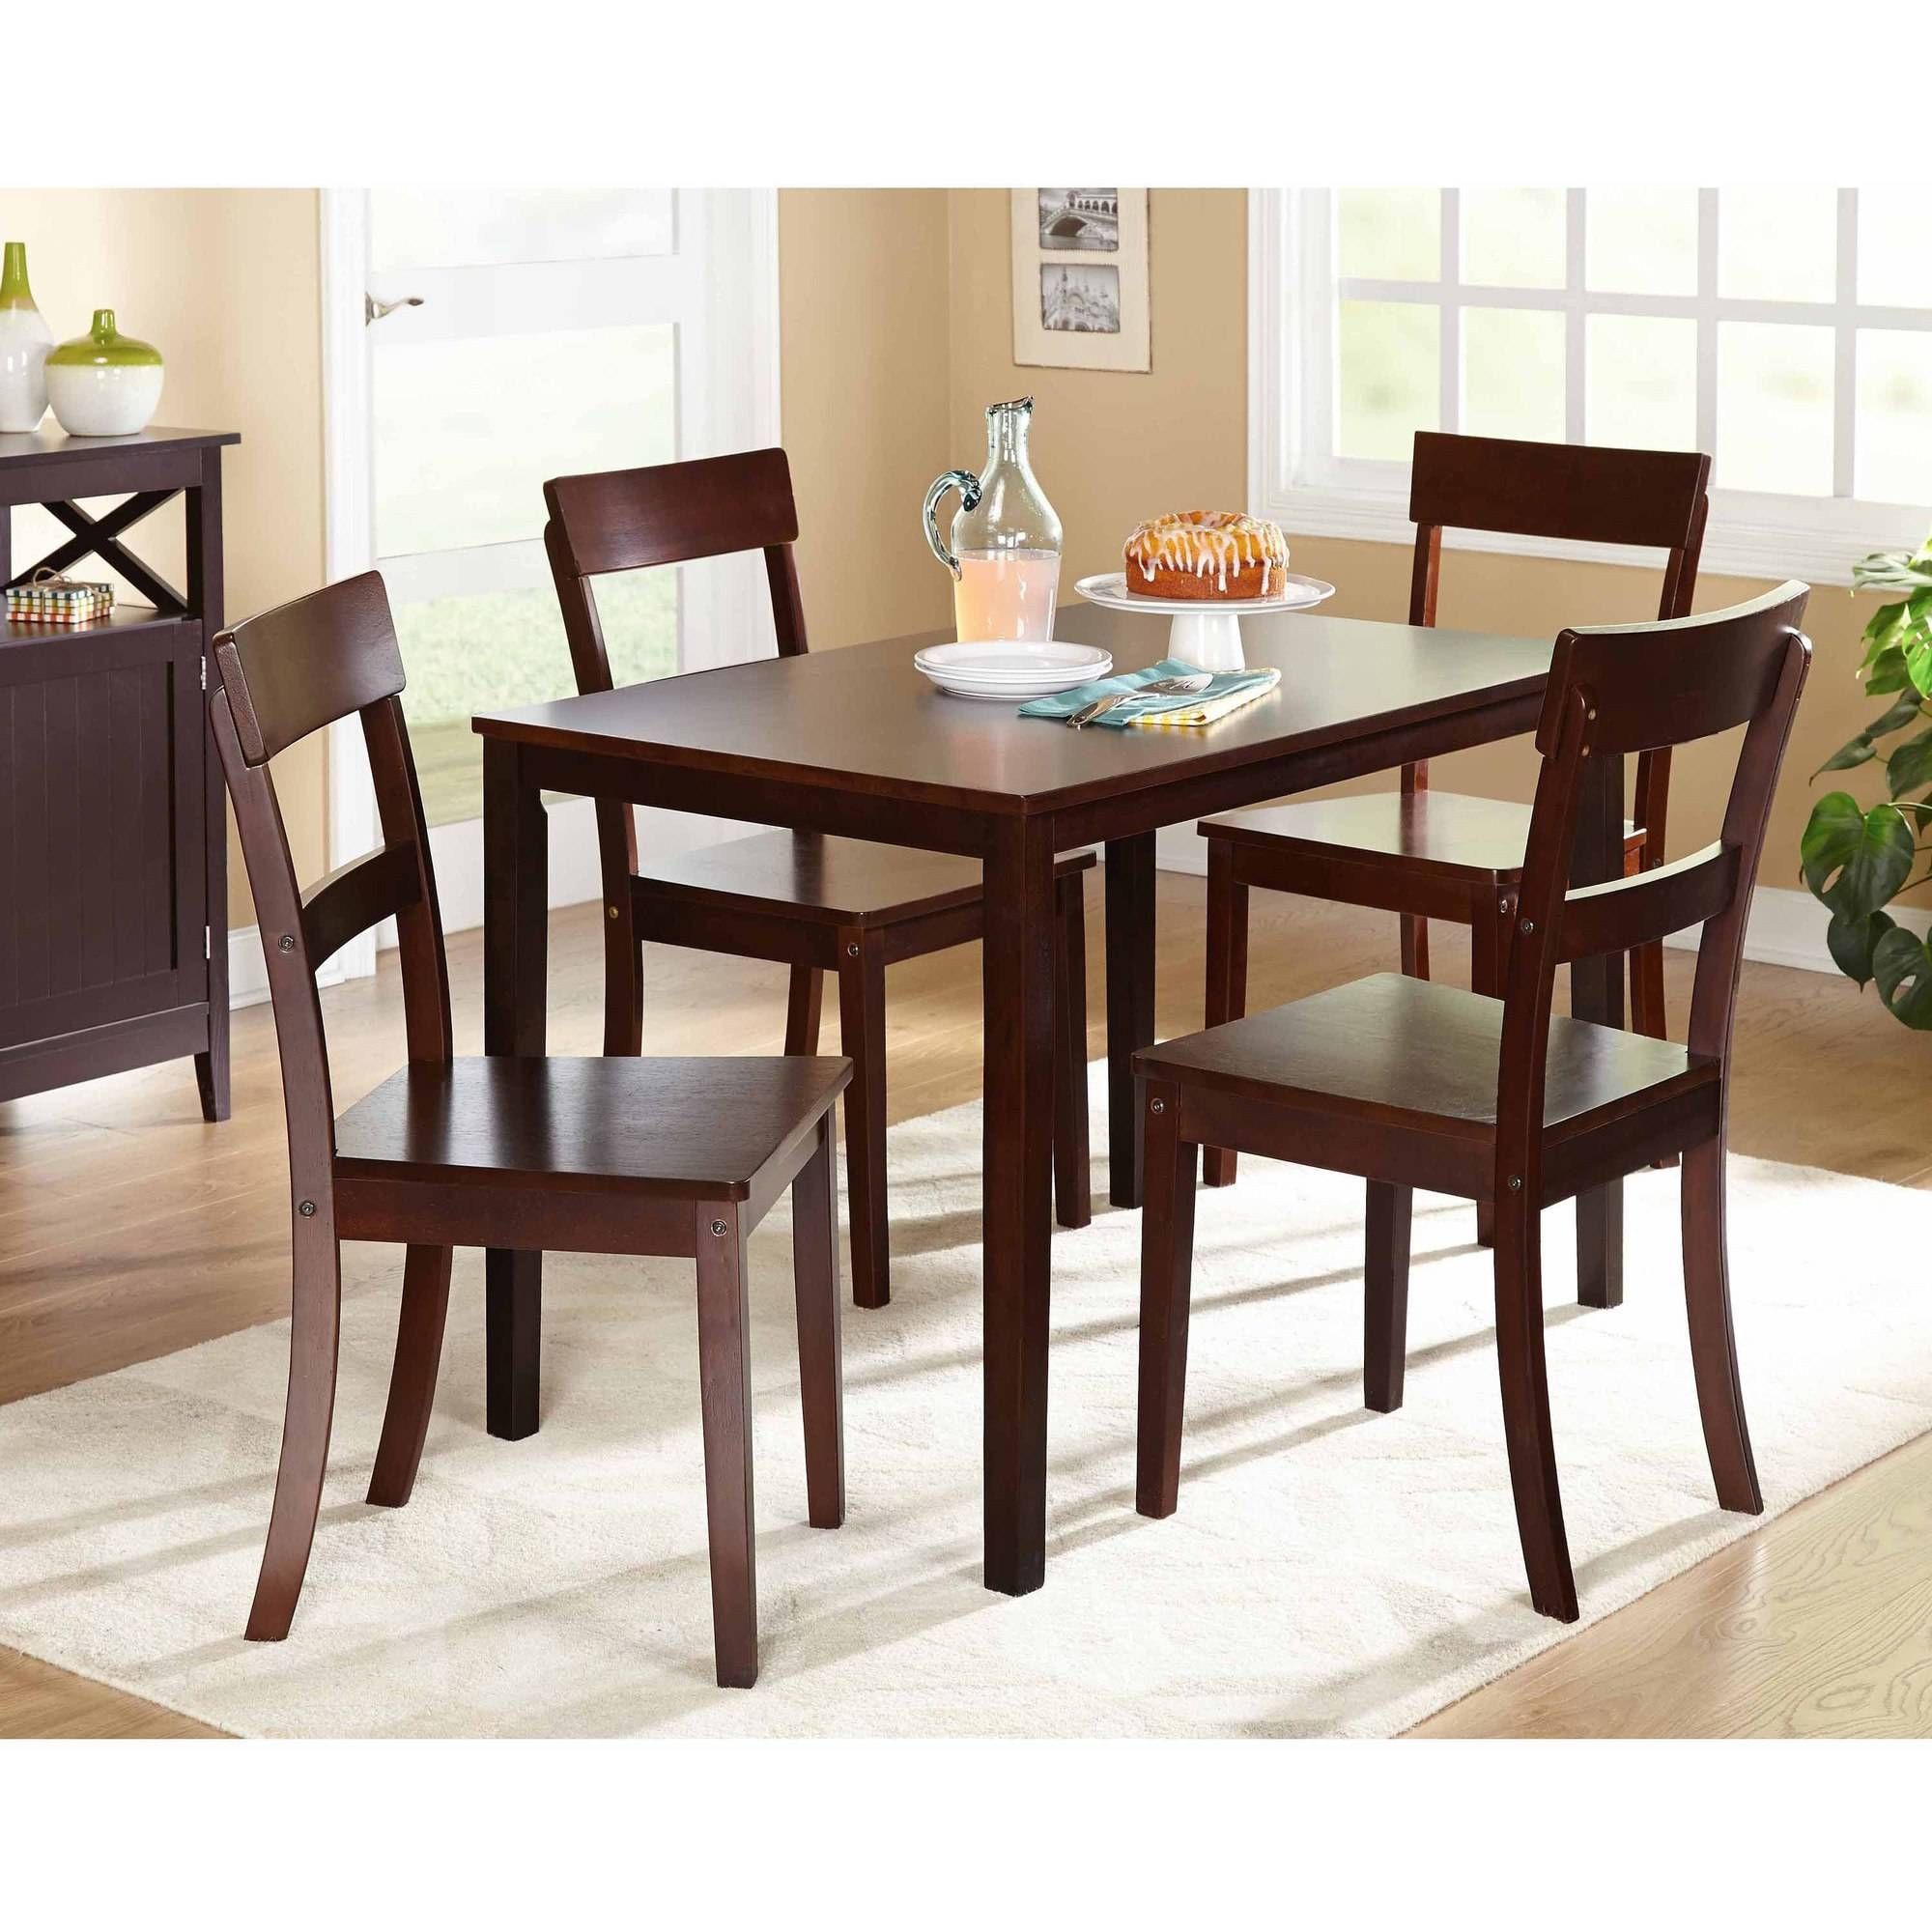 Mainstays 5 Piece Faux Marble Top Dining Set Walmart For Walmart Inside Most Current Harper 5 Piece Counter Sets (Image 11 of 20)